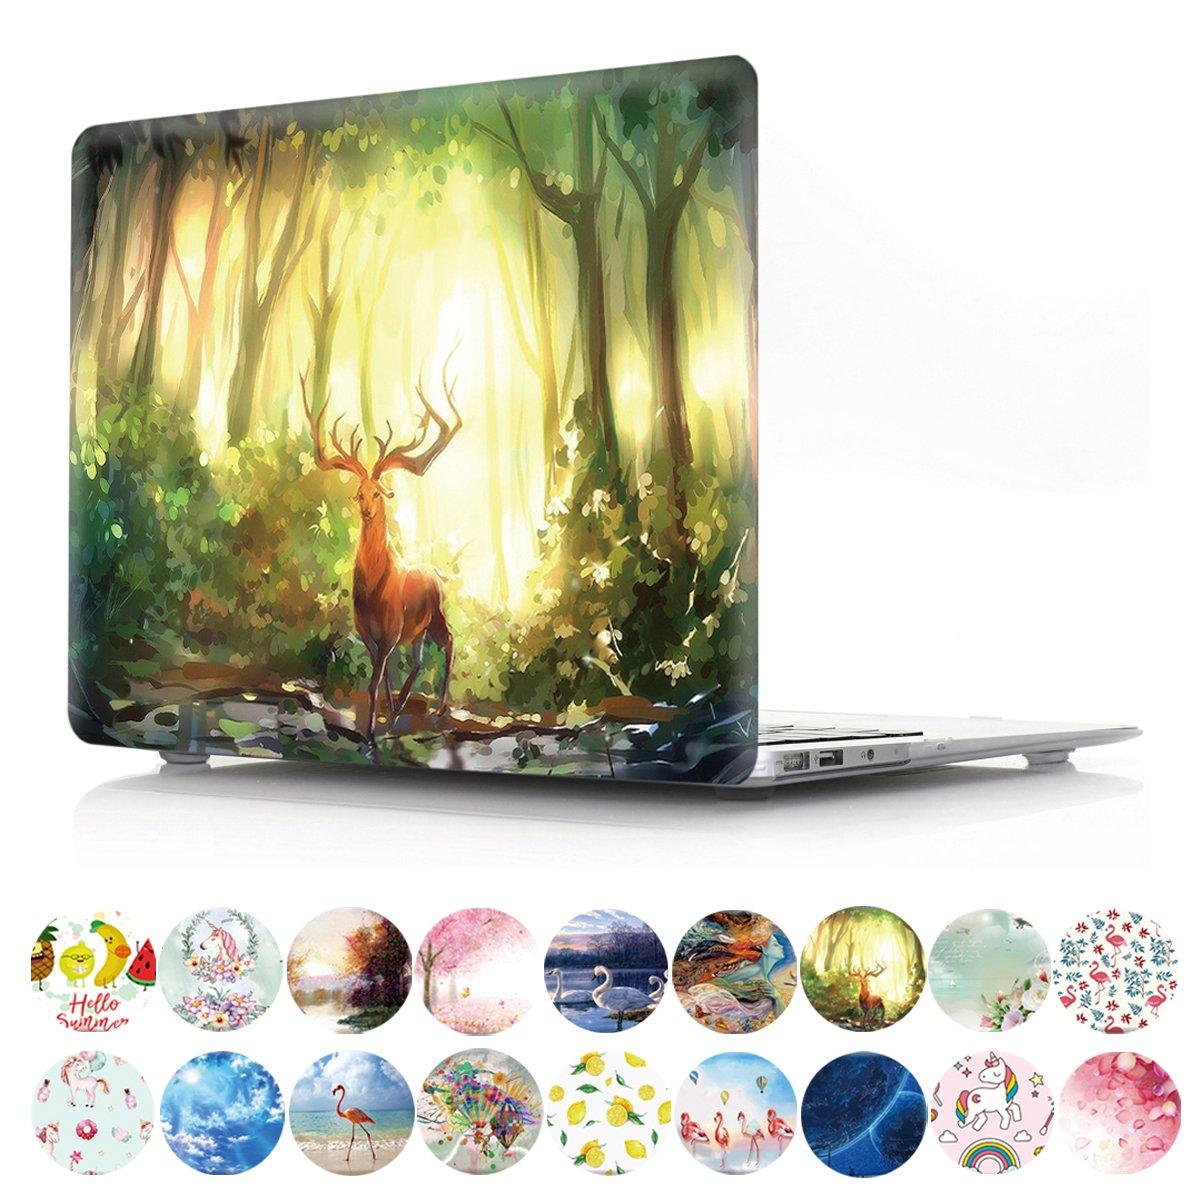 PapyHall Painting Plastic Pattern Hard Case for Old MacBook Pro 15'' with CD-ROM (2010-2012 Release, Non-Retina) Model: A1286 (DZ-Reindeer)